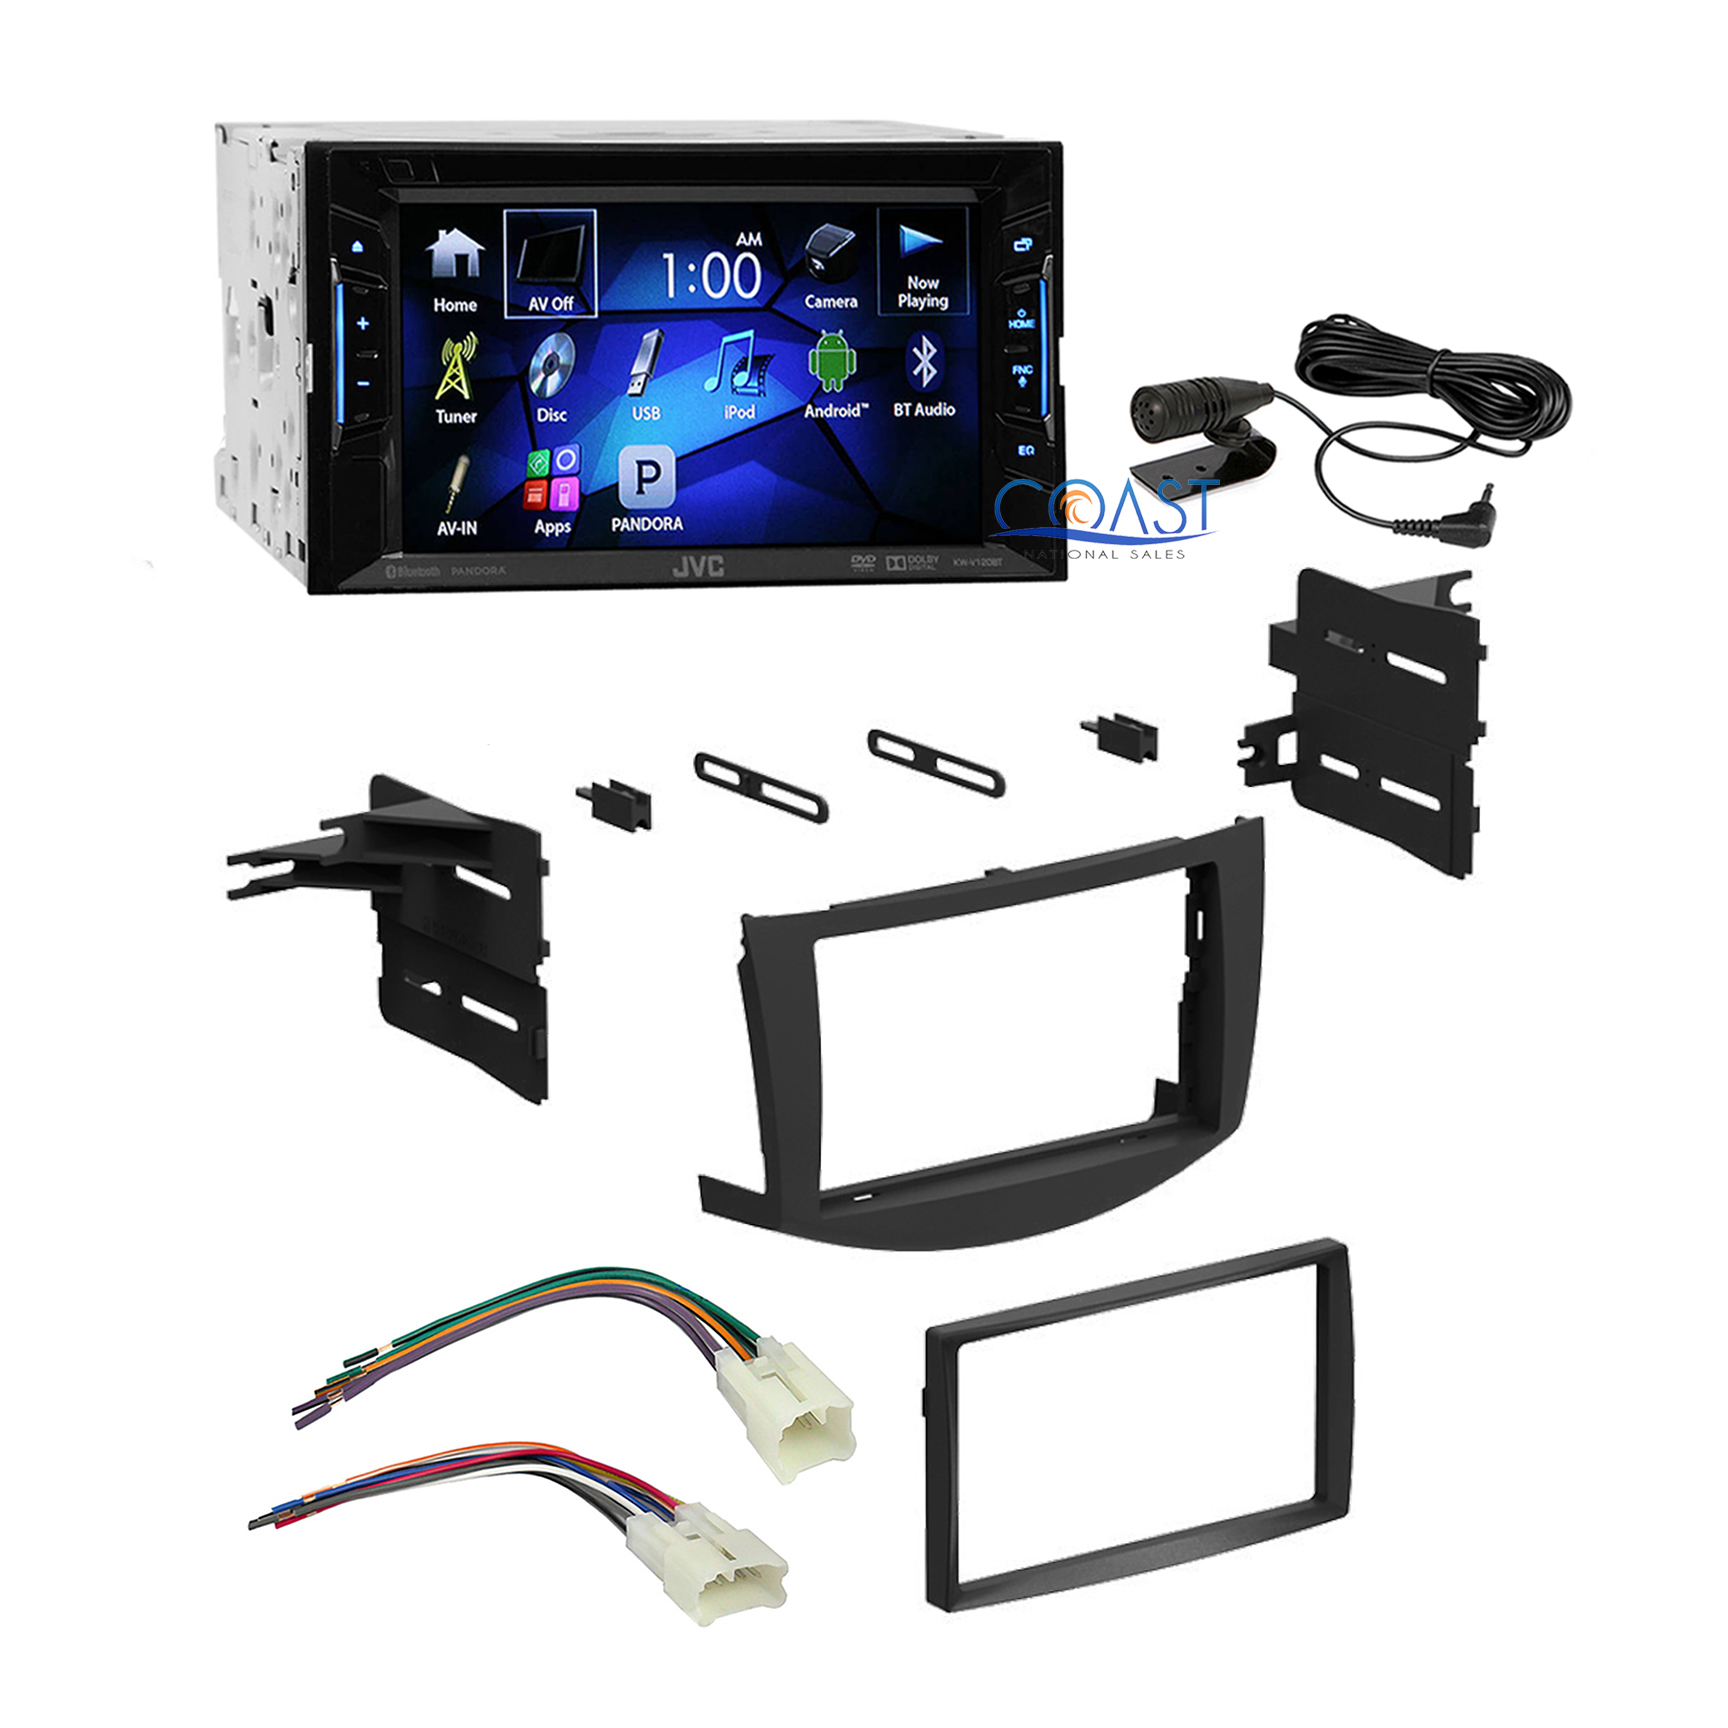 jvc car radio stereo double din dash kit harness for 2006. Black Bedroom Furniture Sets. Home Design Ideas